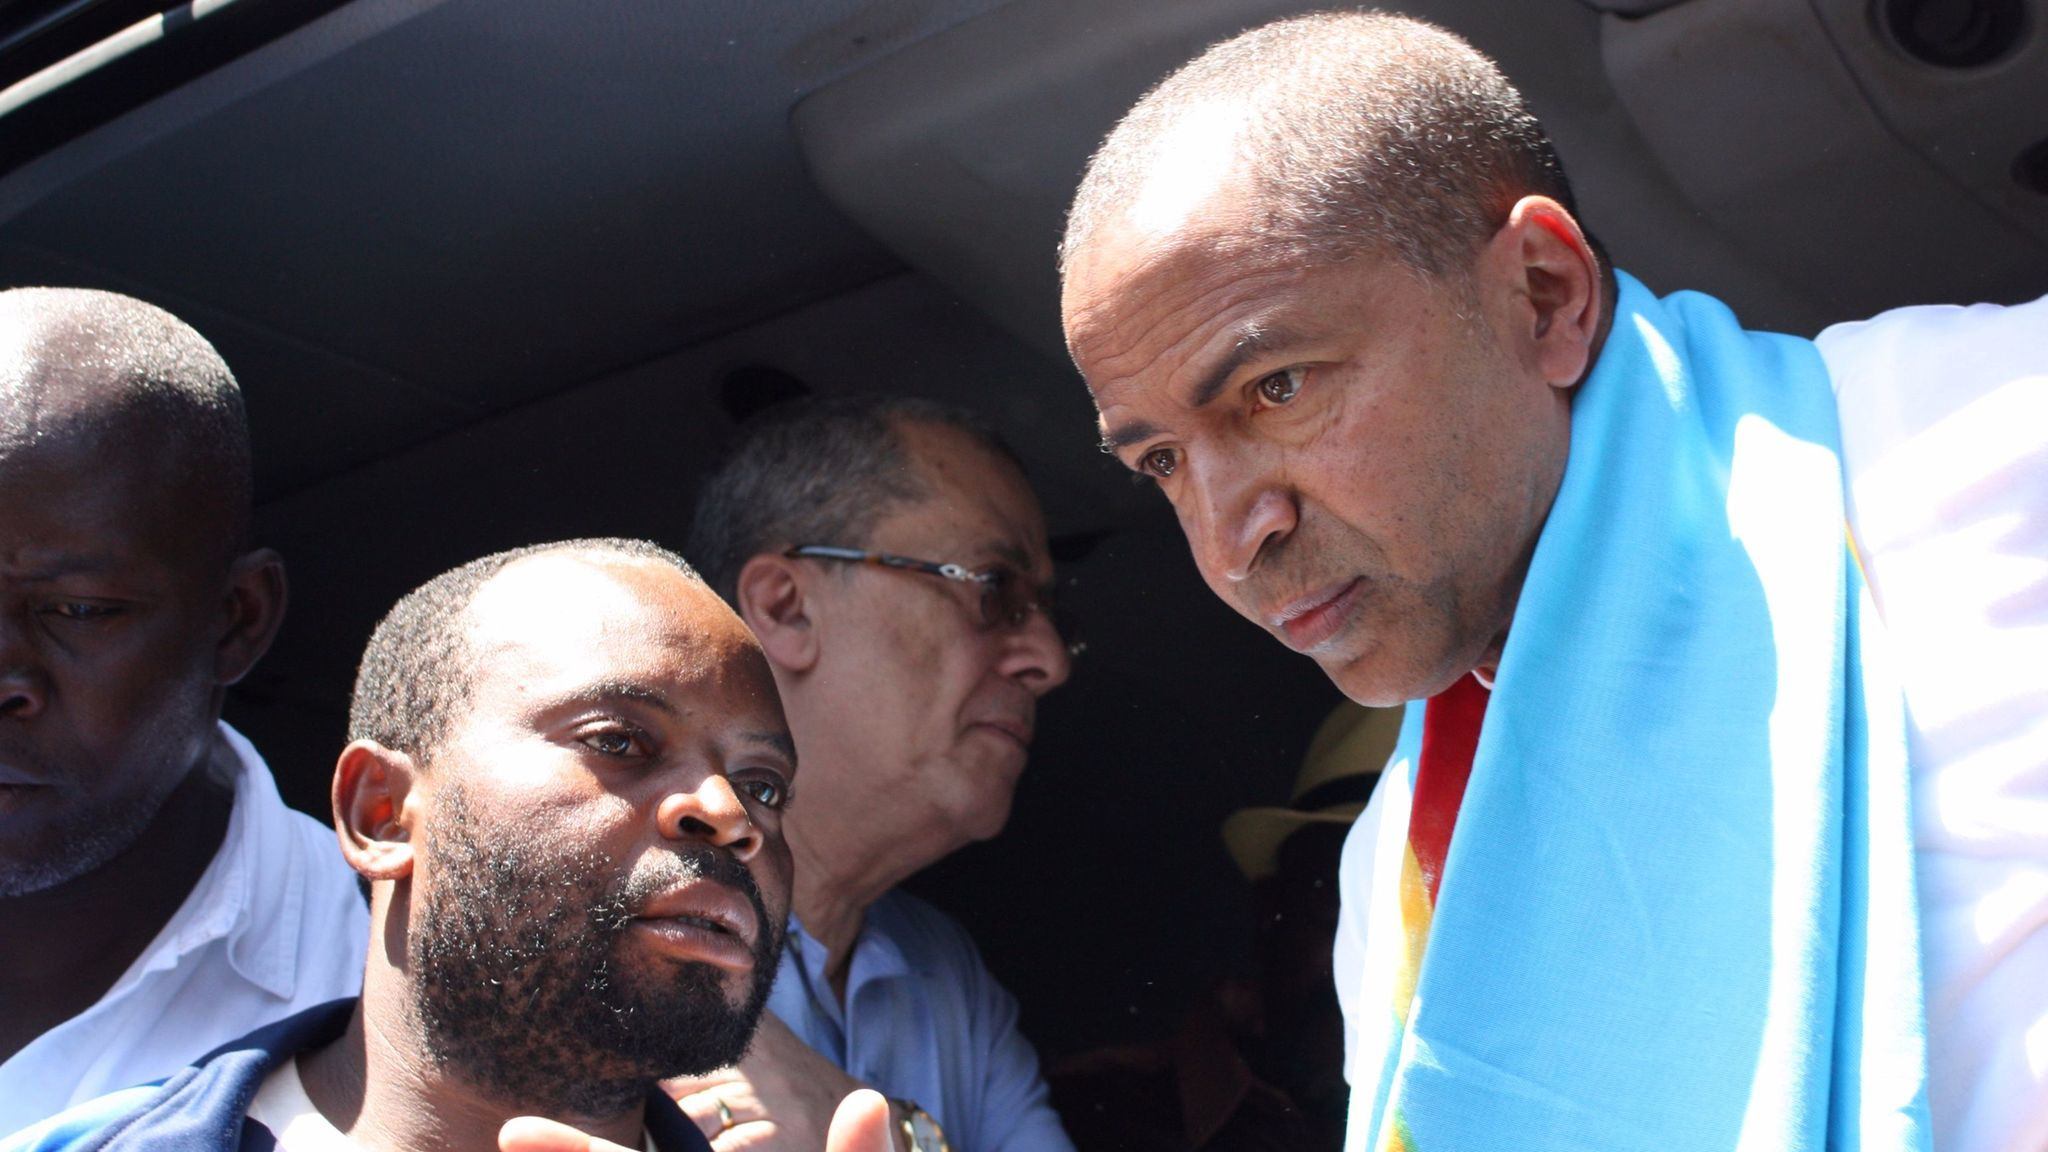 Opposition figure Moise Katumbi arrives at a courthouse in Lubumbashi, Democratic Republic of Congo, in May last year, accused of hiring foreign mercenaries to topple the government.